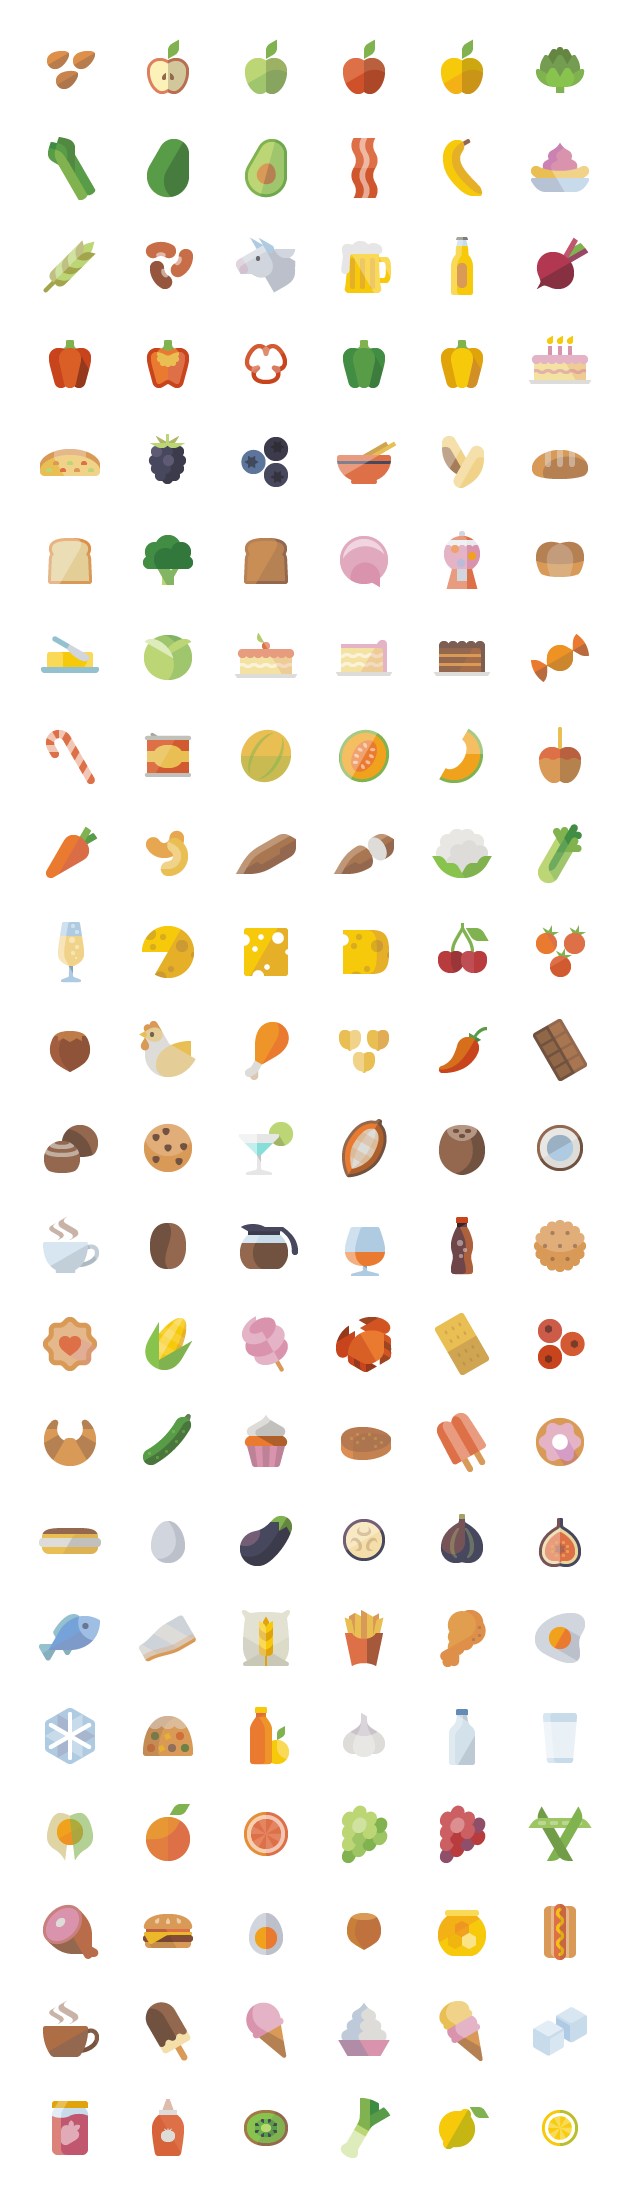 set contains all the icons which allude to food elements related to fruits and vegetables, spices, dairy products, meats, baked goods, beverages, drinks and prepared foods. This set includes approximately 6725 unique icon shapes ( without counting sizes ), and all sizes: 24, 32, 48, 64, 72, 128, 256 and 512 pixels, vector files [...]